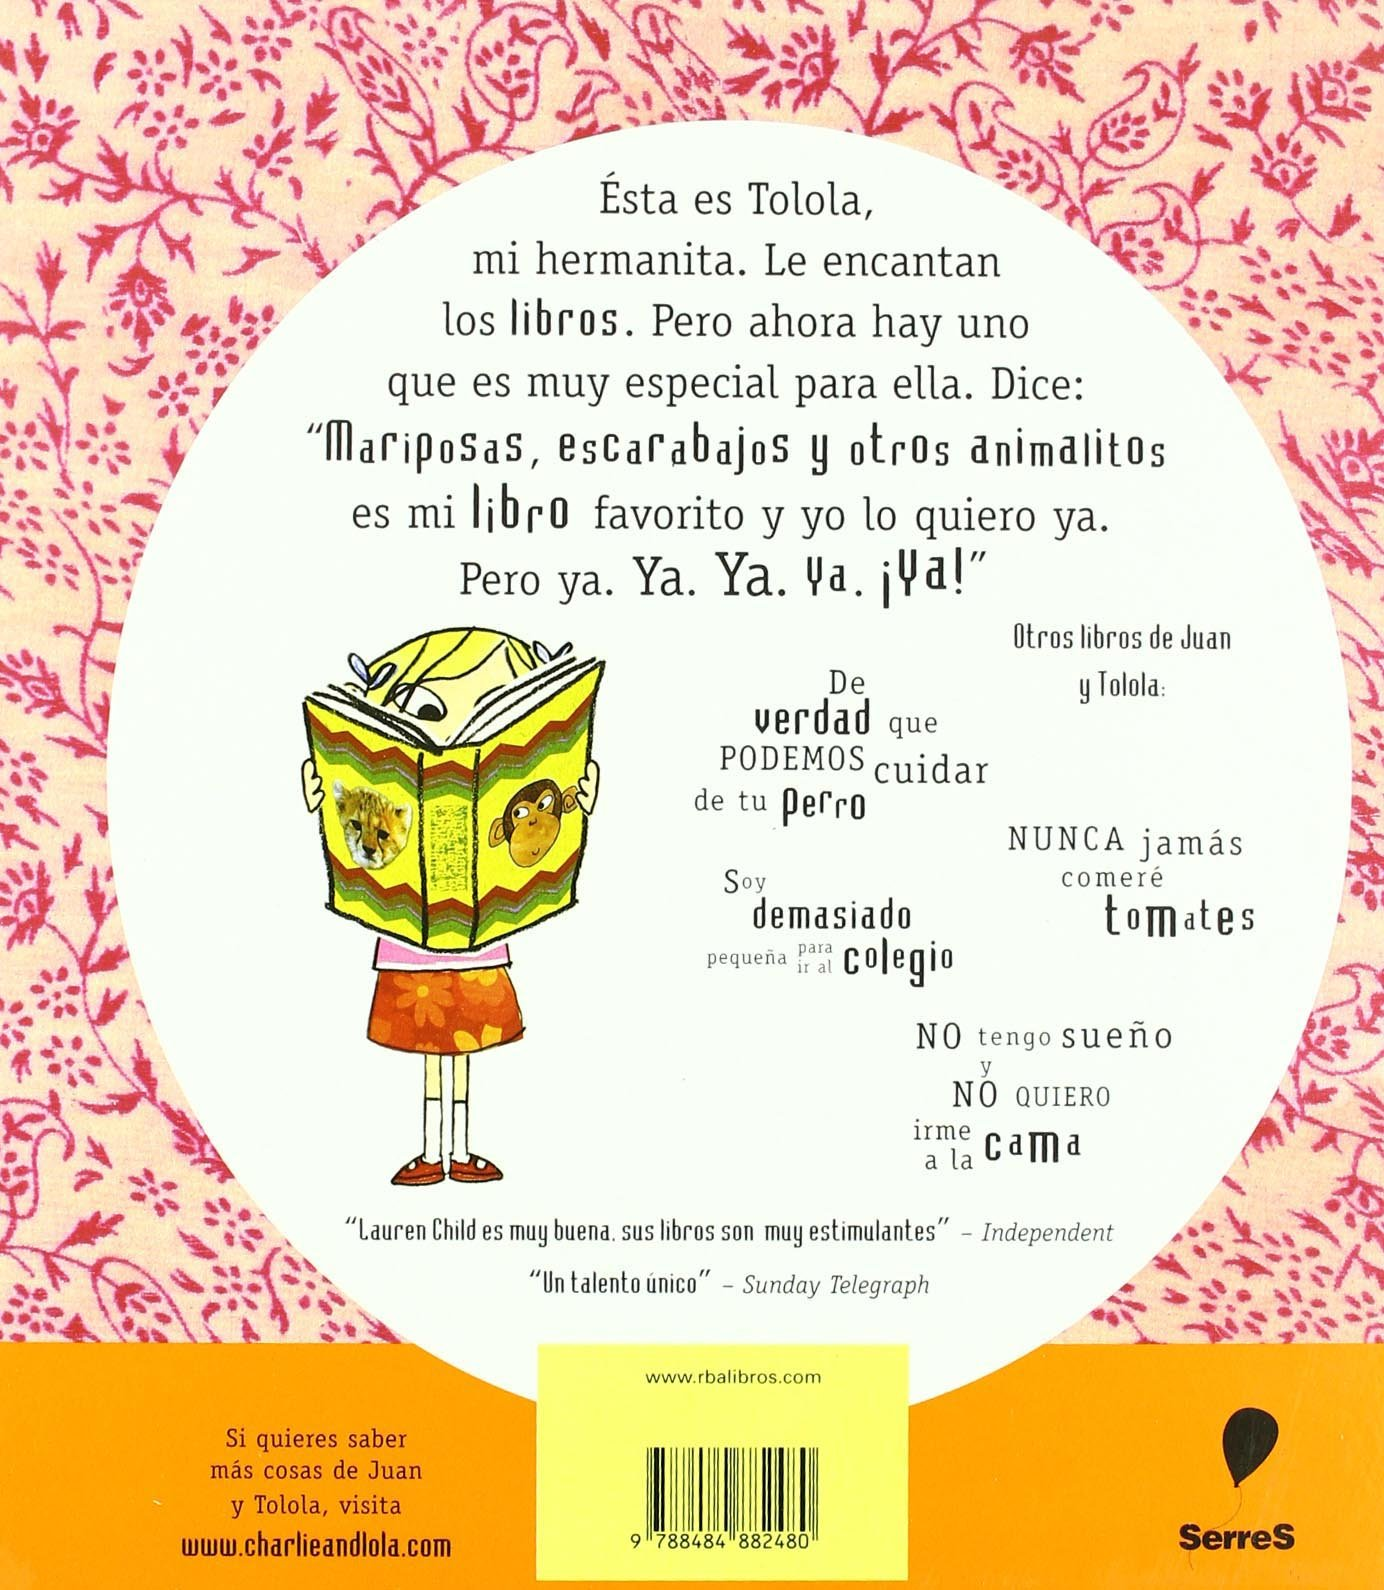 Perdona, Pero Ese Libro Es Mio/excuse Me, but That Book Is Mine (Spanish Edition): Lauren Child, Miguel Angel Mendo: 9788484882480: Amazon.com: Books